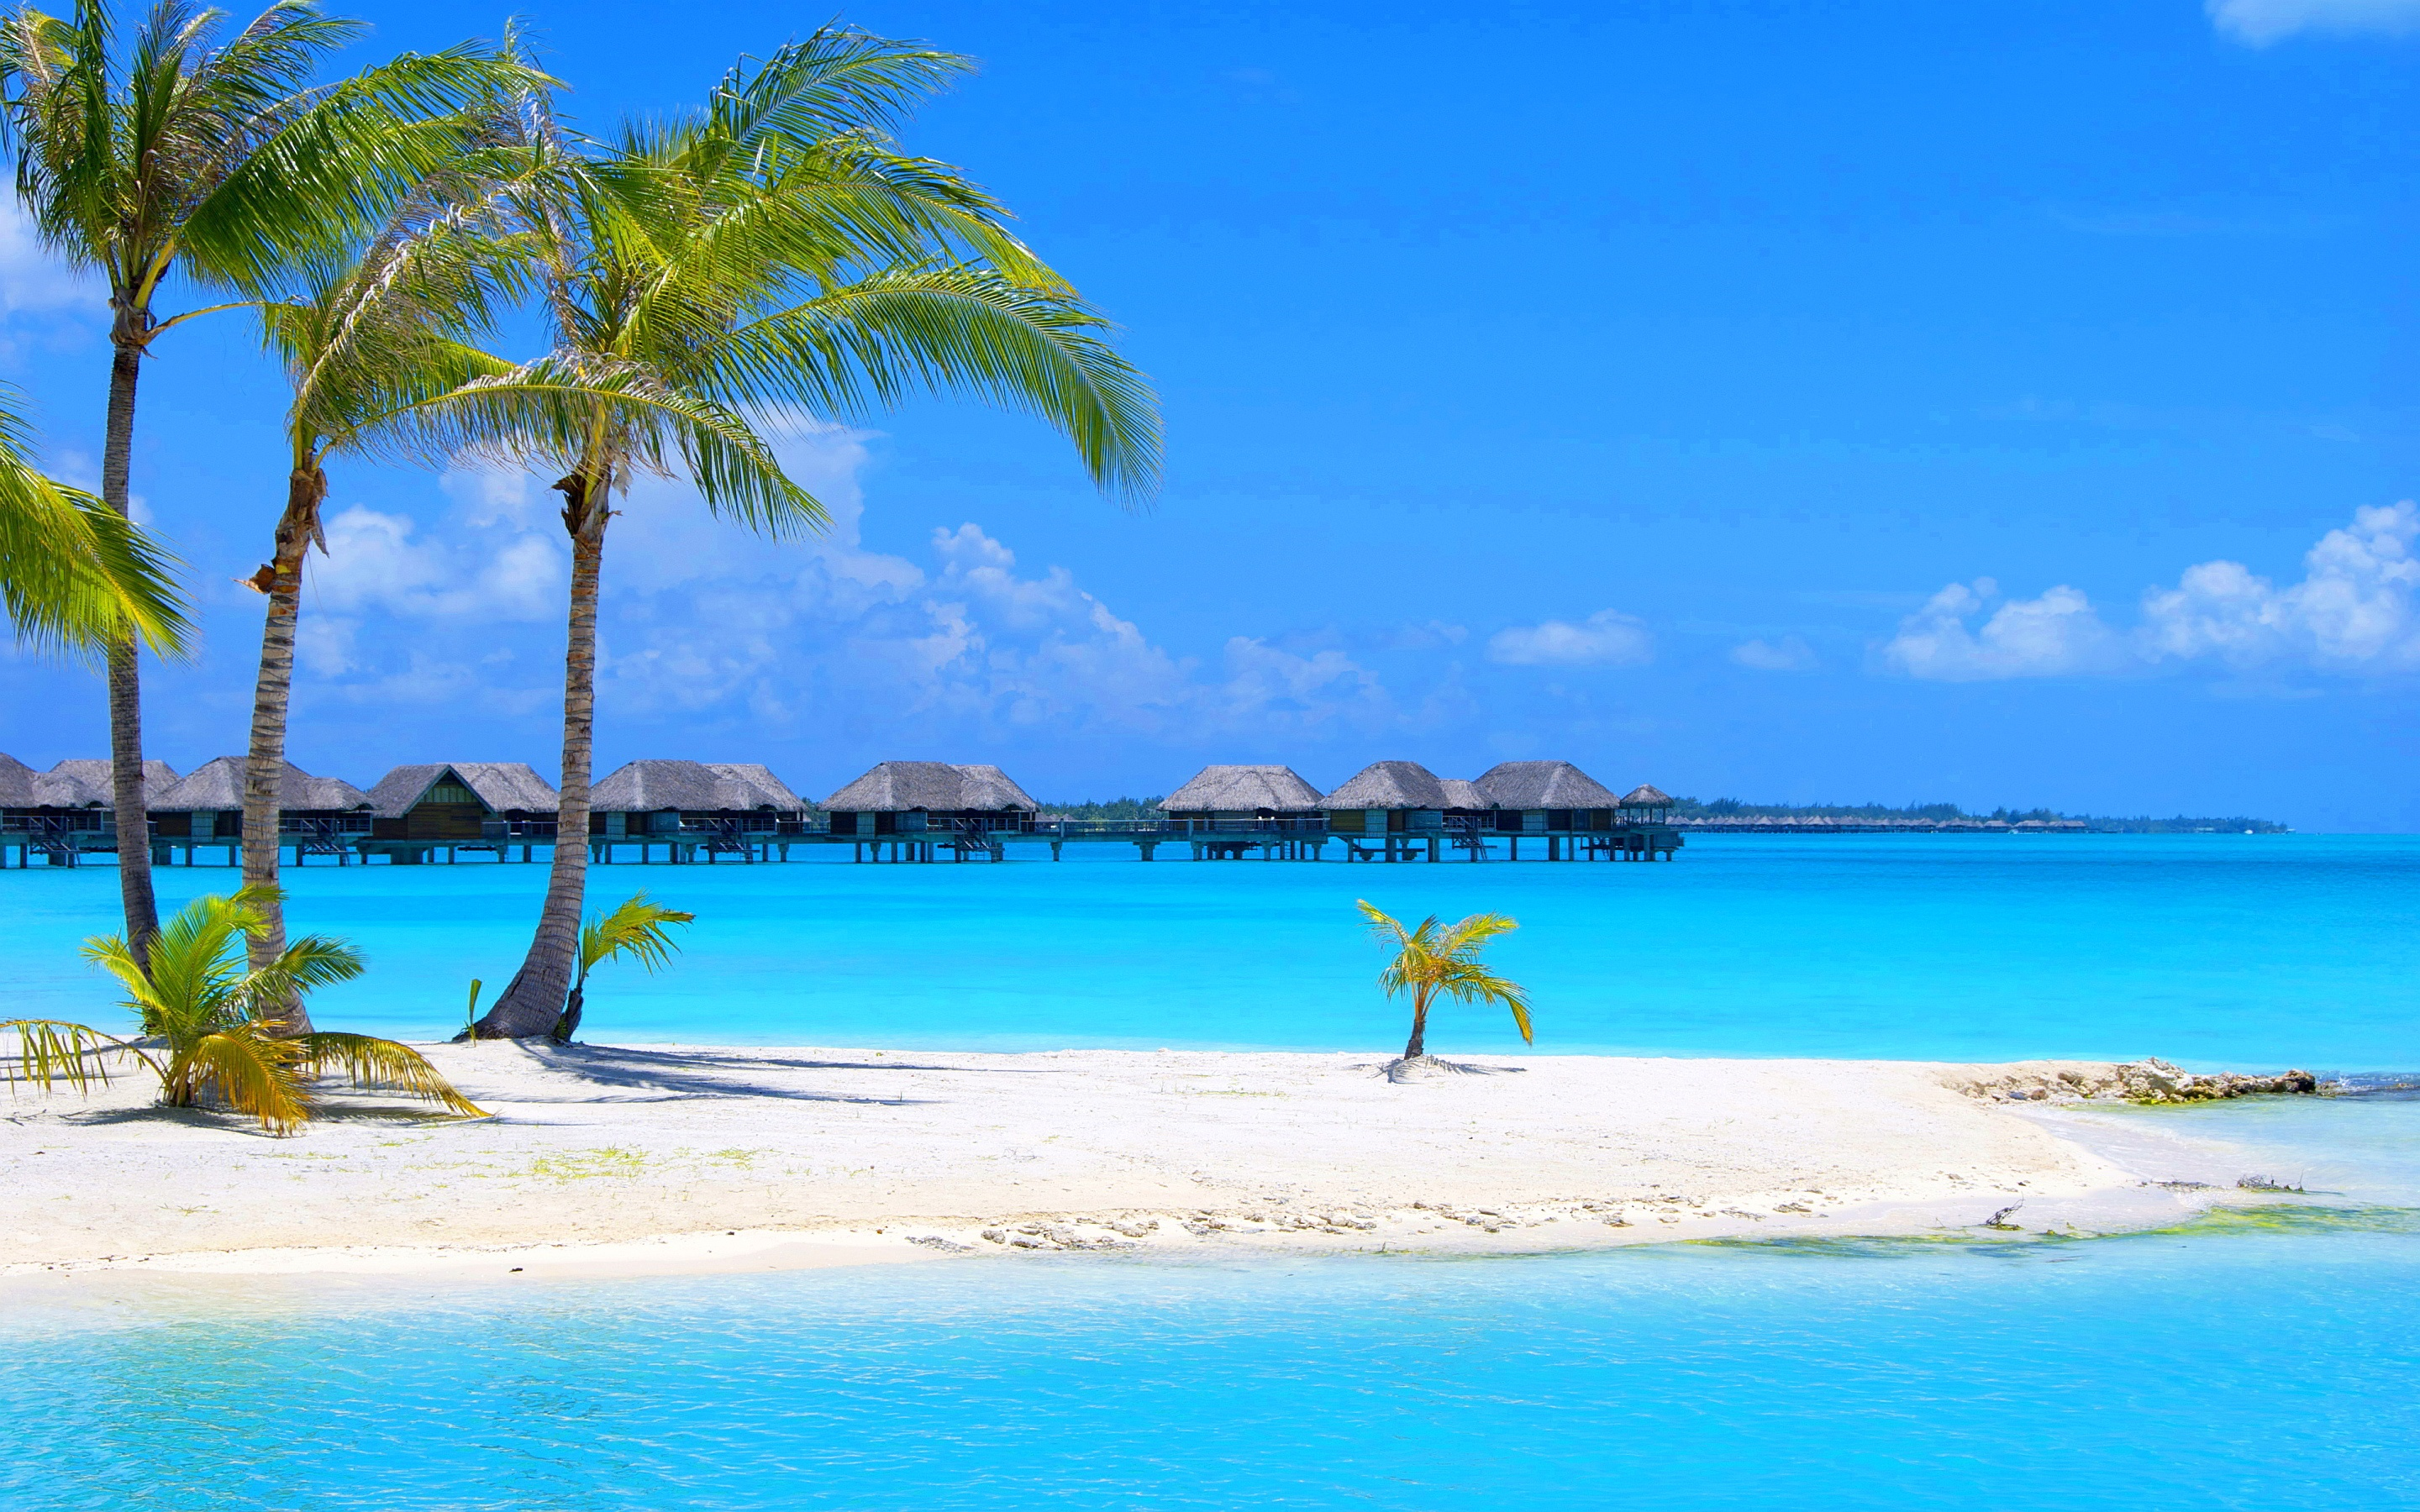 Beach Screensavers HD wallpaper | 2880x1800 | #15348